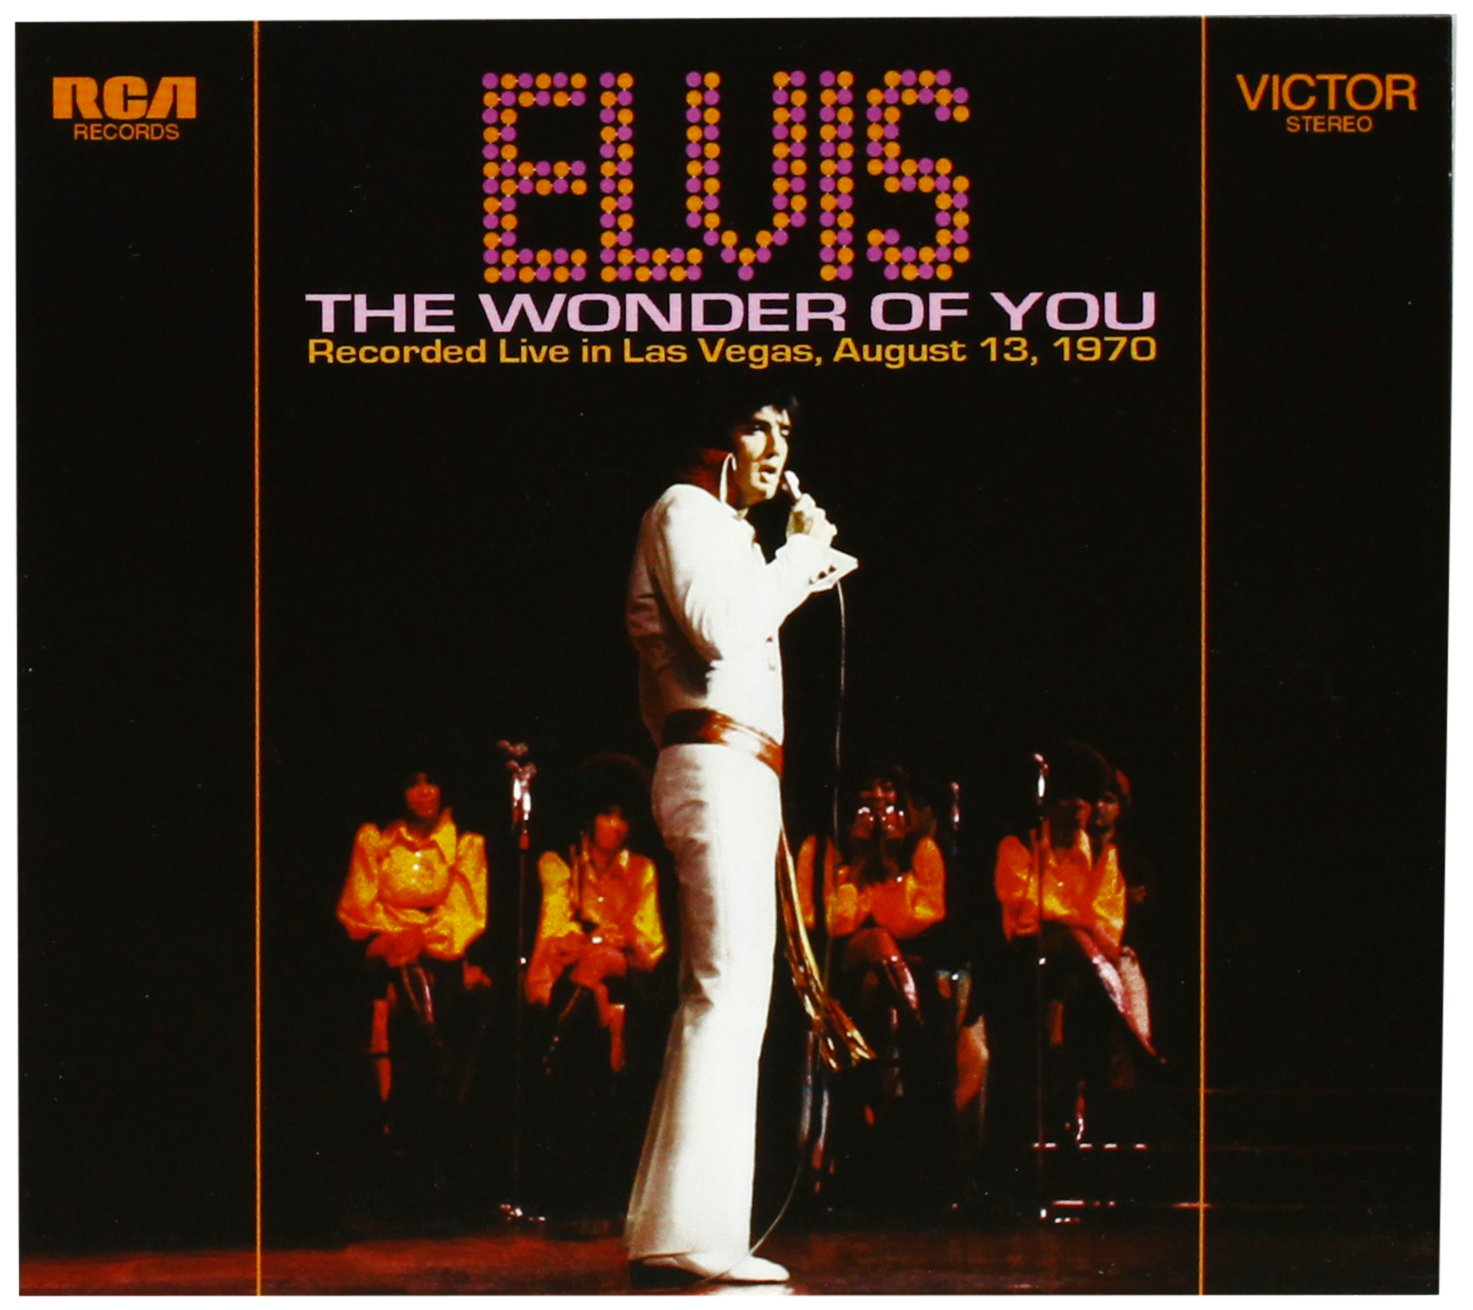 Elvis Presley: The Wonder Of You - Recorded Live in Las Vegas, August 13, 1970 by RCA / Follow That Dream